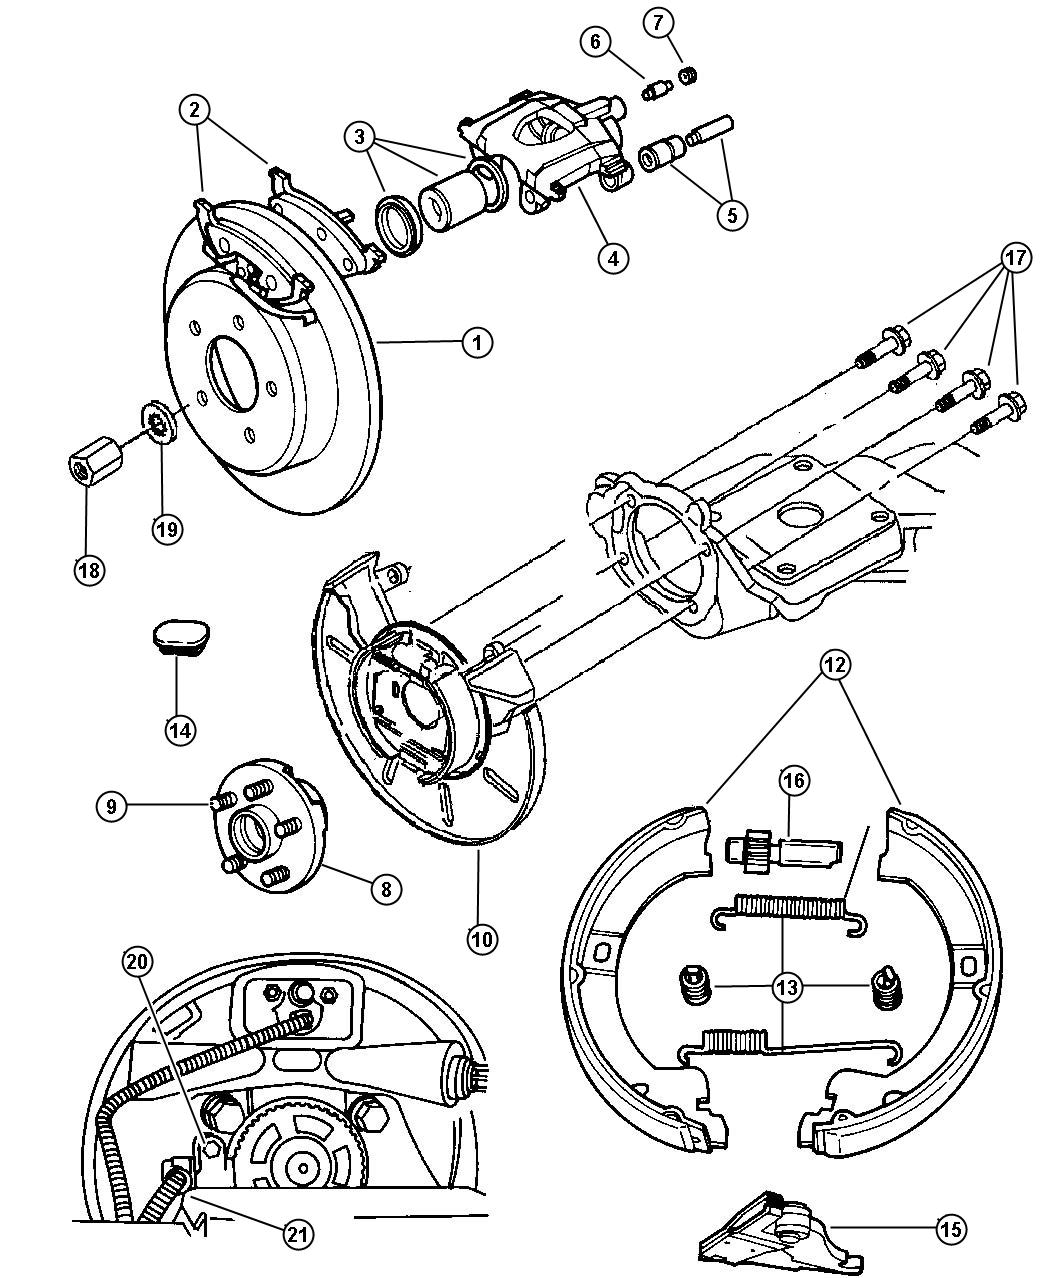 plymouth breeze vacuum diagrams  plymouth  auto wiring diagram